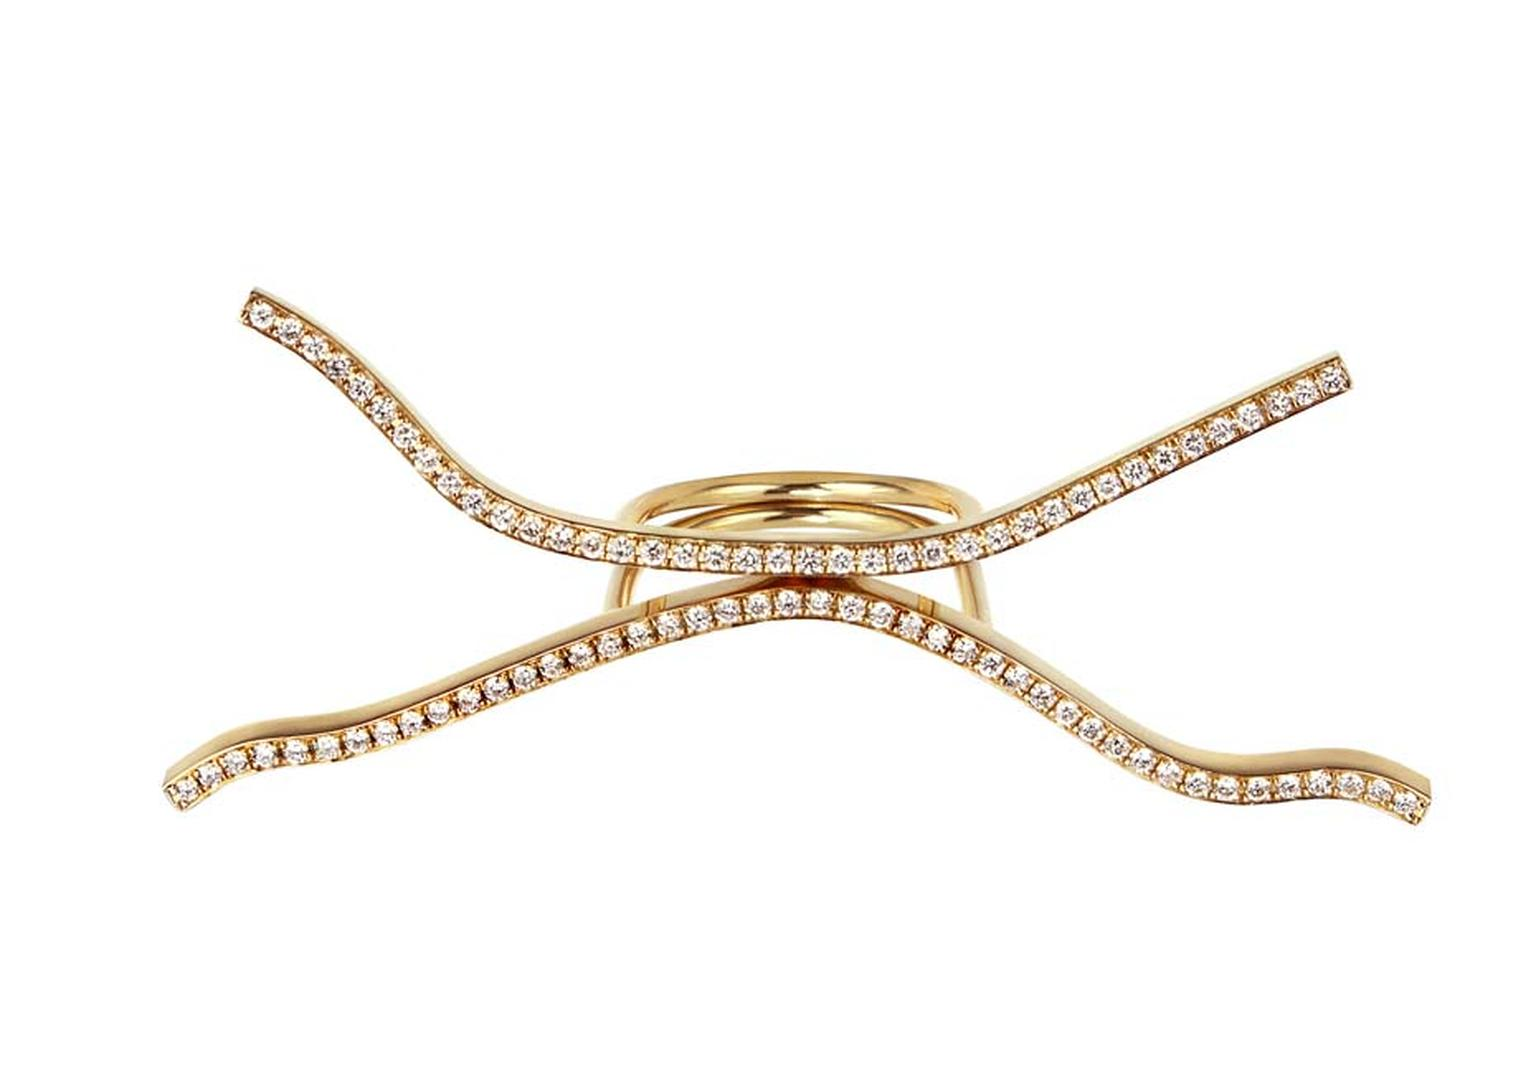 Elena Votsi's gold Crazy Line rings